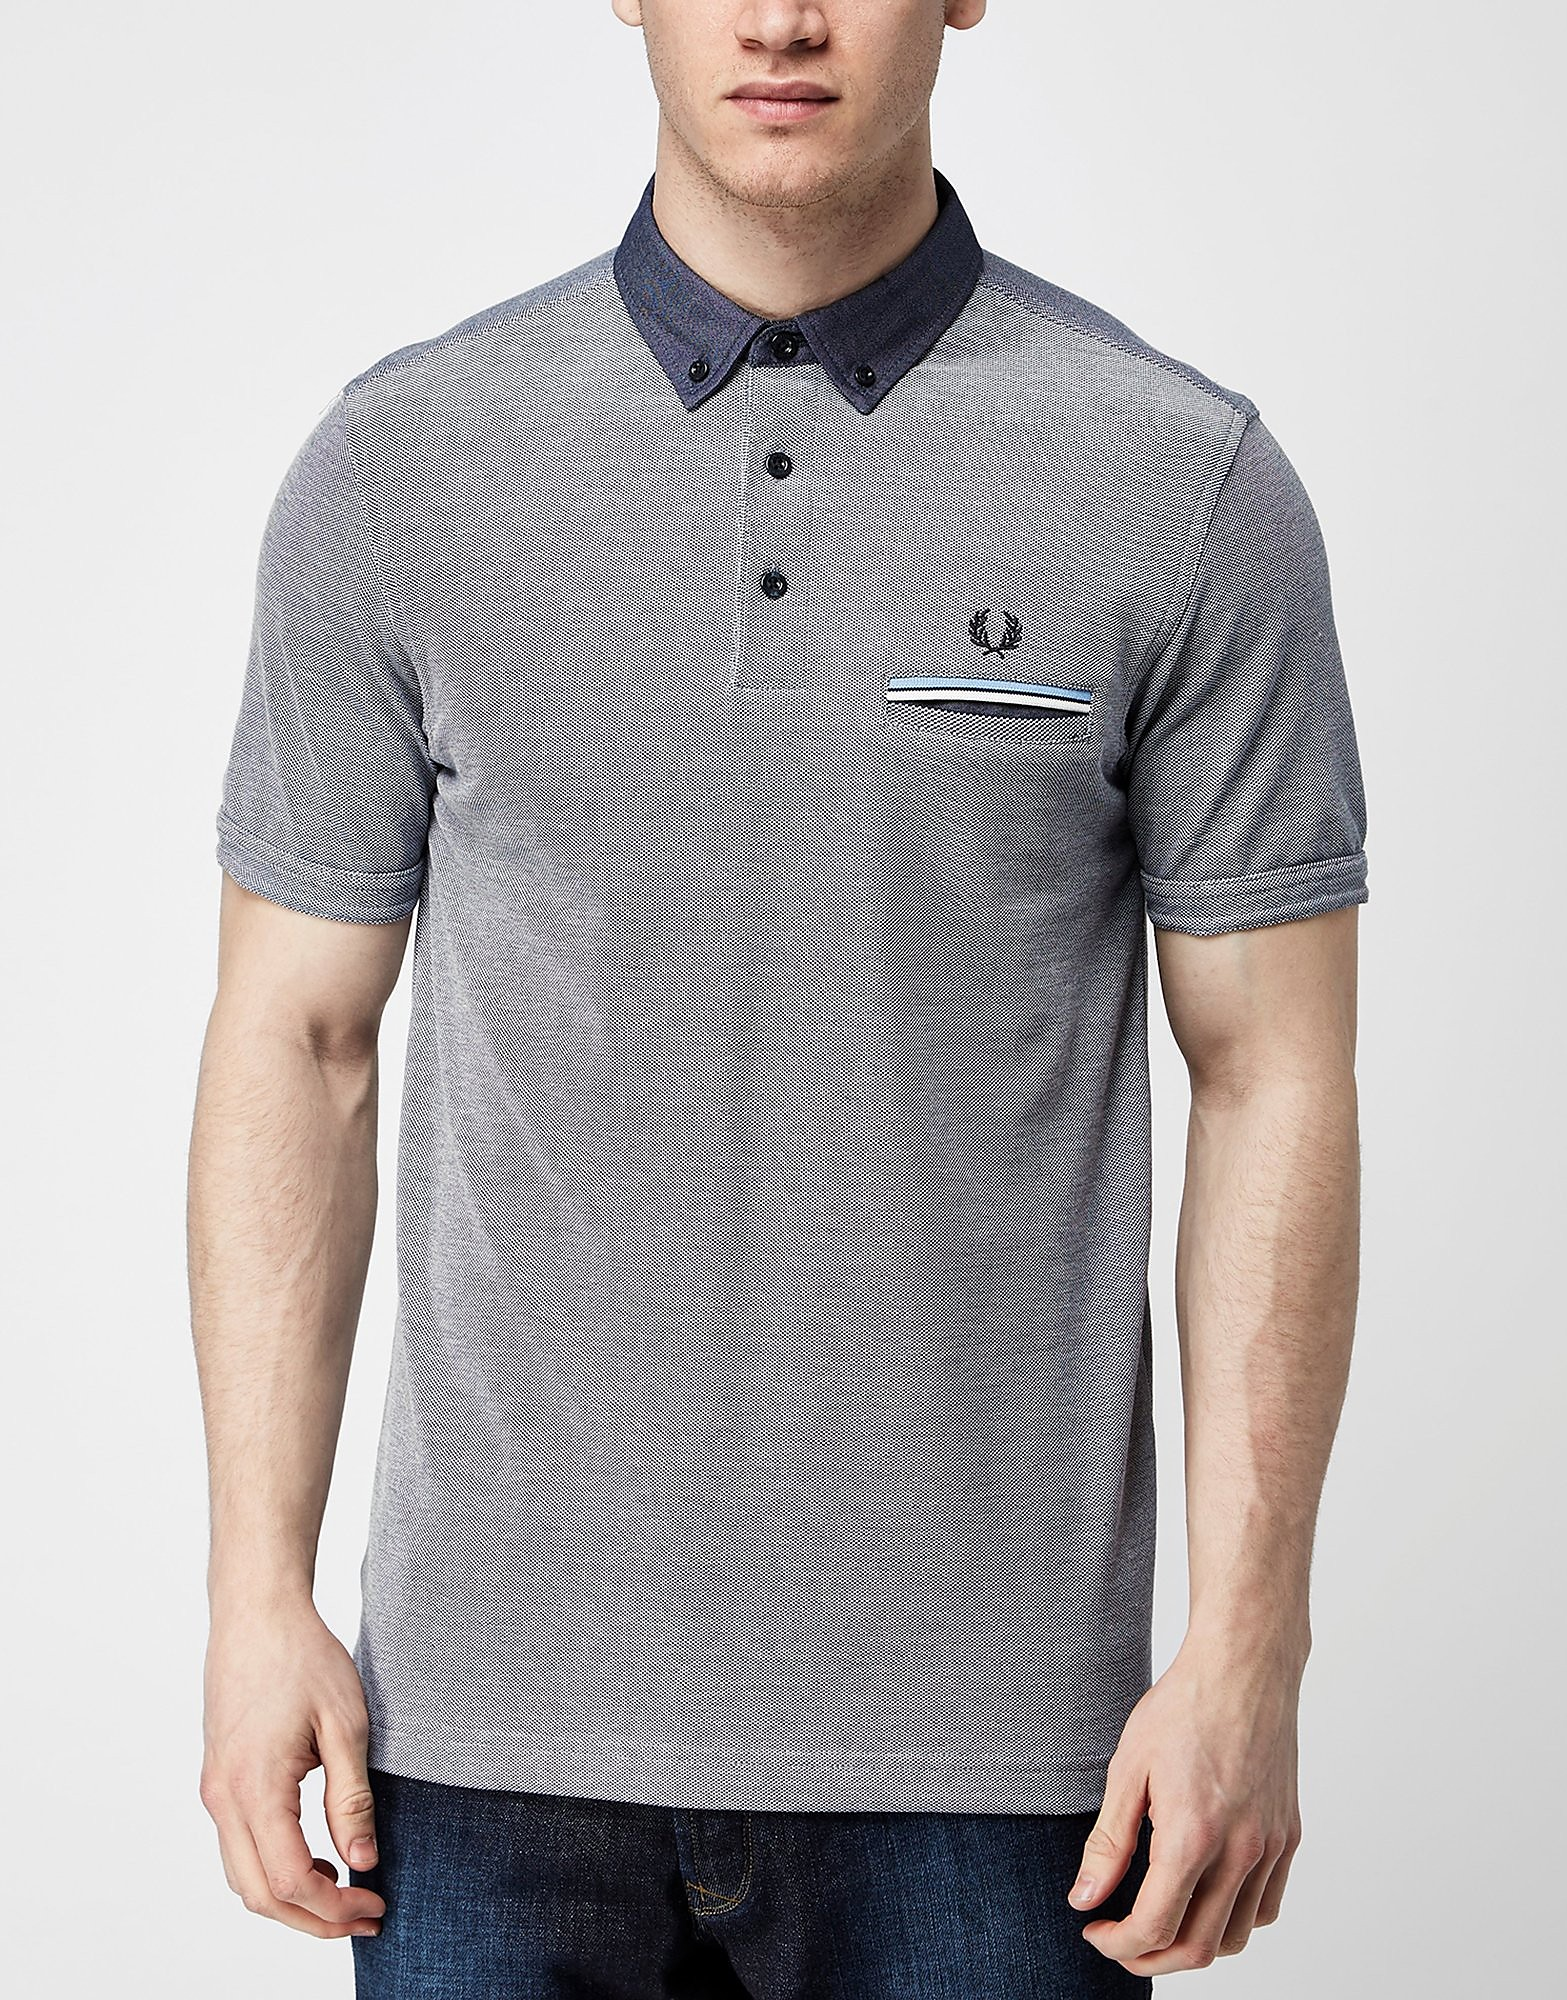 Fred Perry Woven Collar Oxford Polo Shirt  Blue Blue